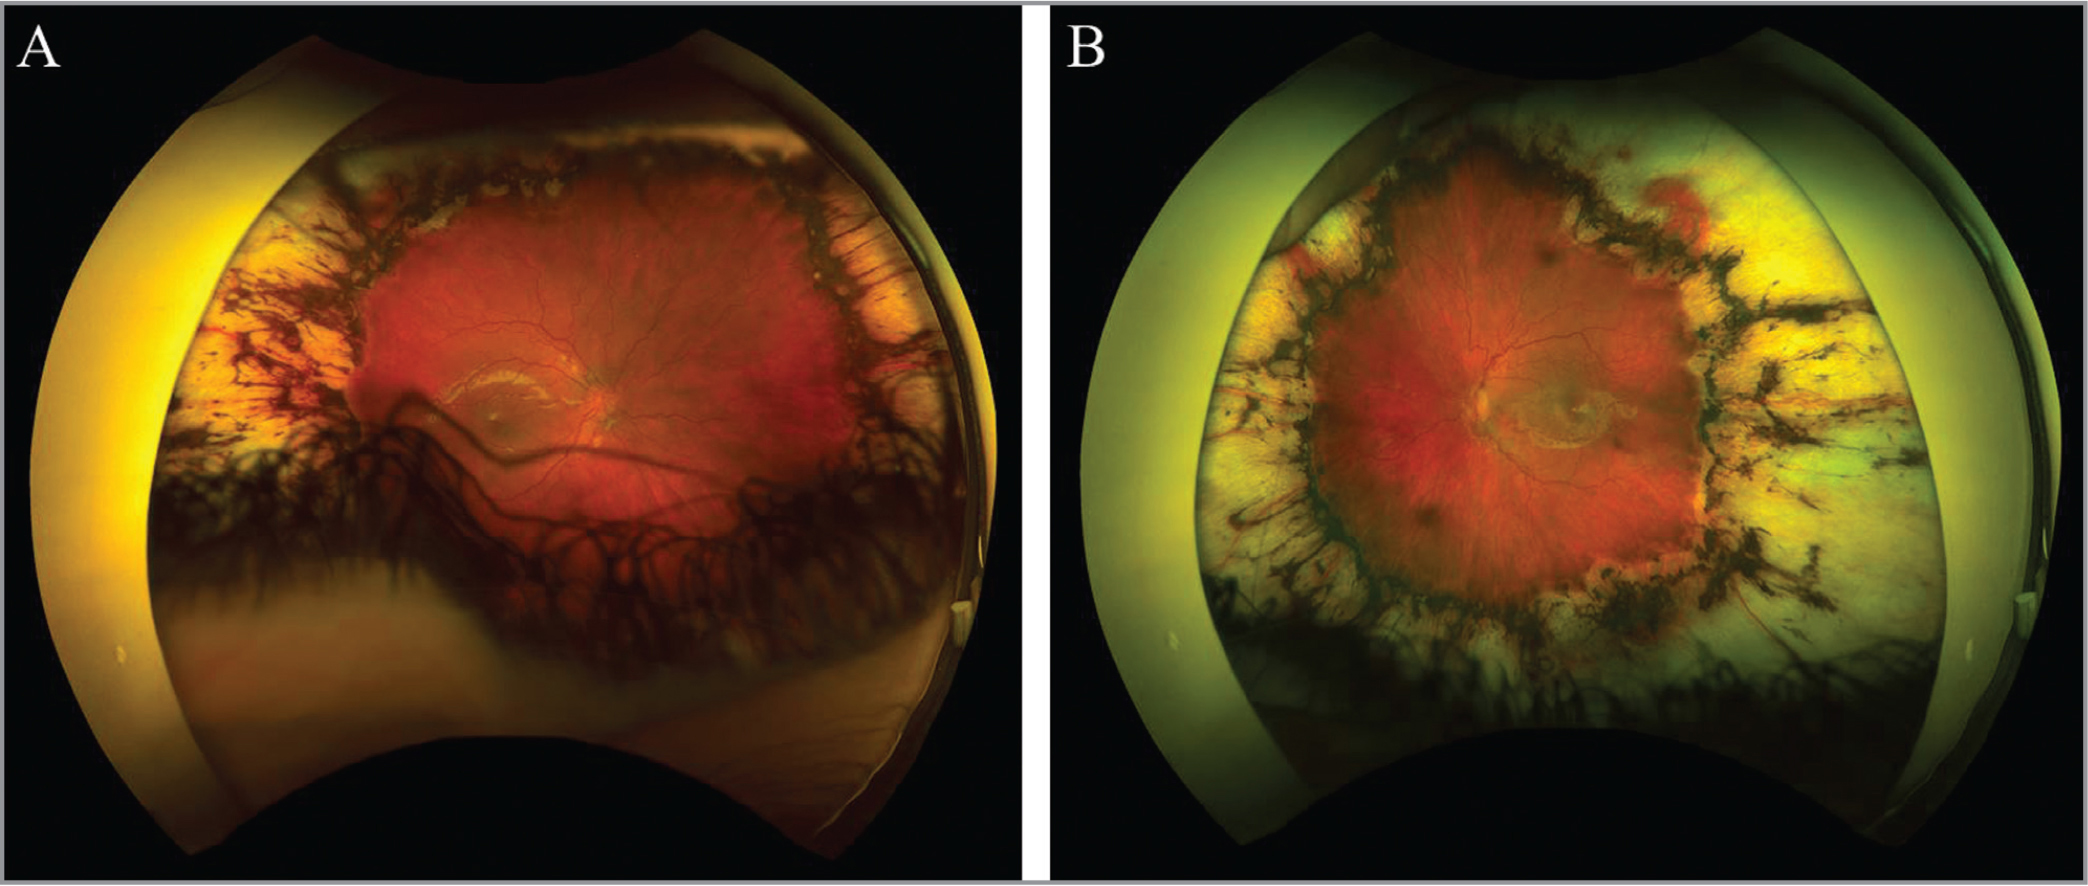 Presence of persistent vascular tortuosity in all four quadrants of the retina at age 5 in the right (A) and left eyes (B).